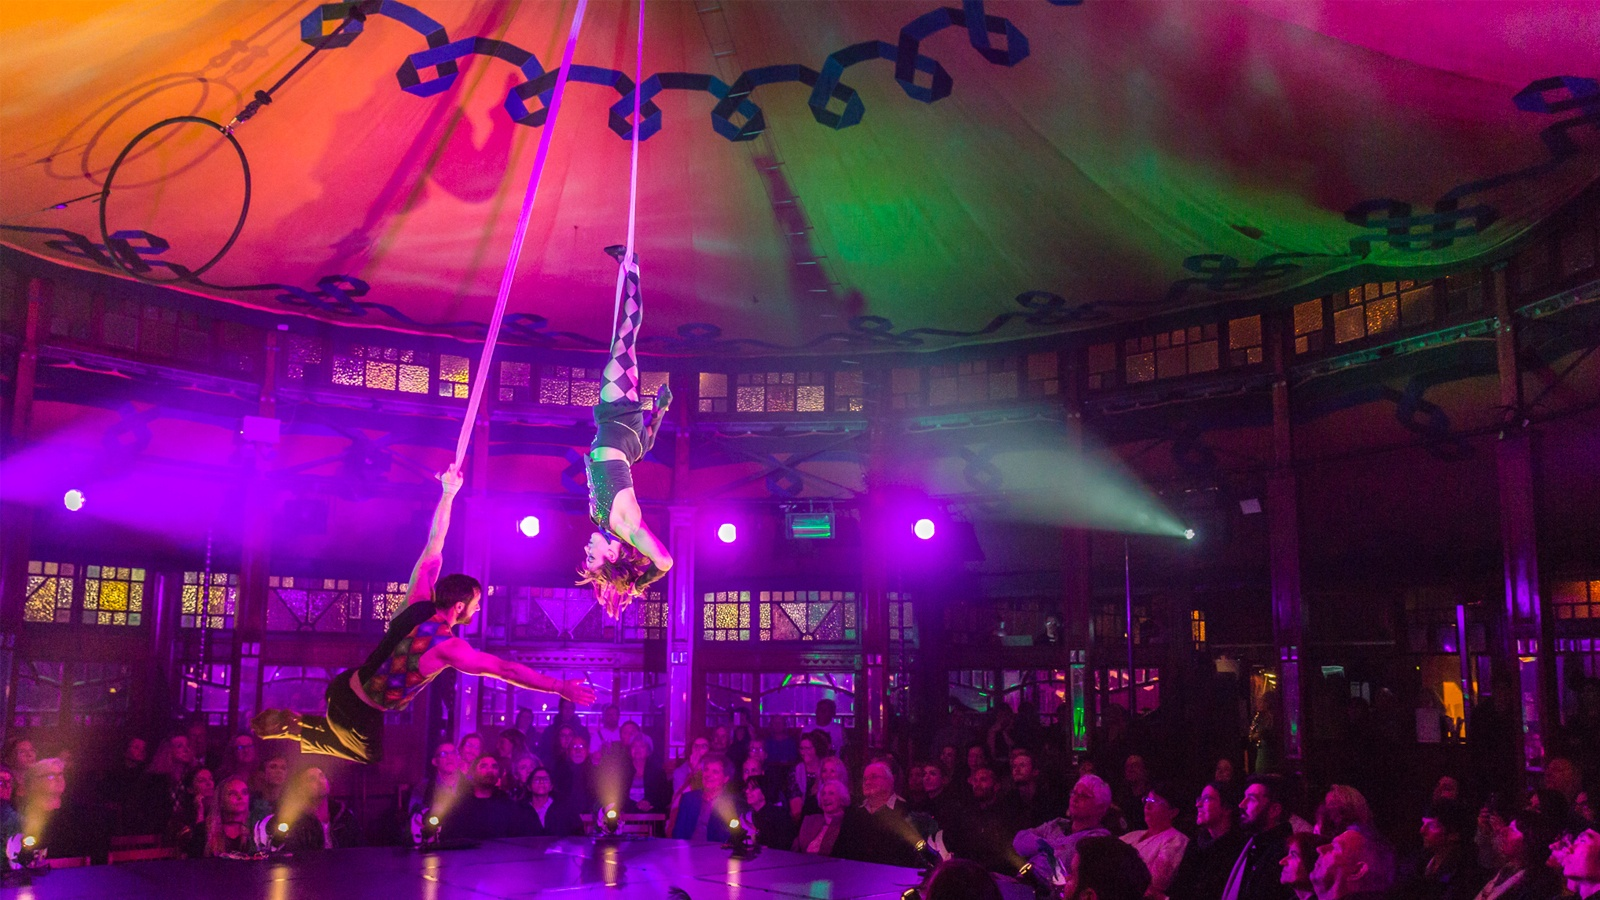 aerial strap artists flying across the stage